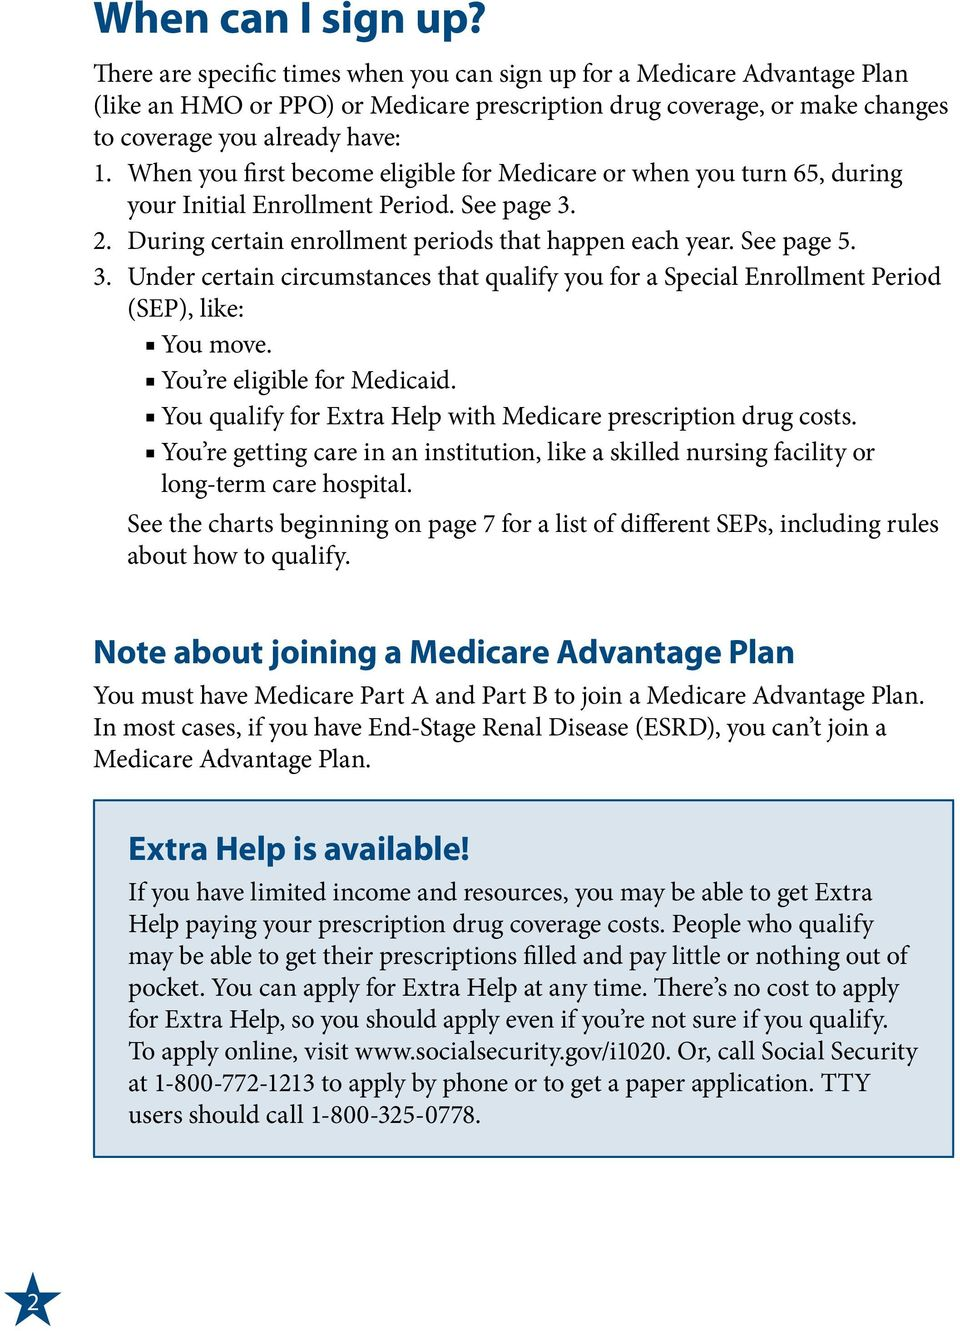 When you first become eligible for Medicare or when you turn 65, during your Initial Enrollment Period. See page 3.